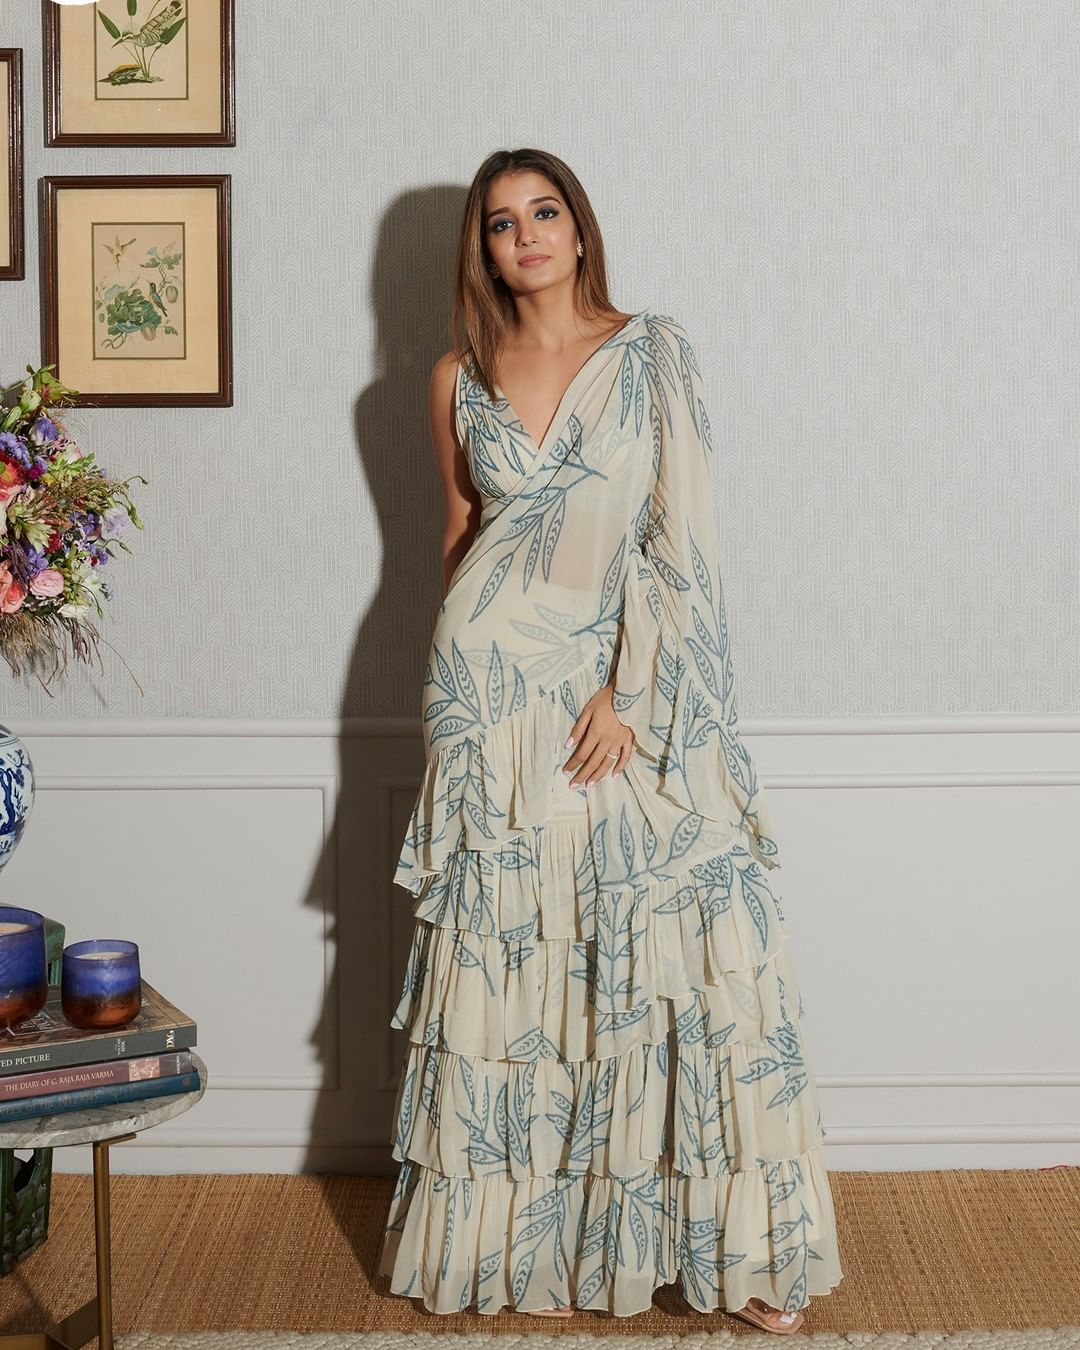 Keeping it classy yet effortless as seen in the frame Arpita Mehta in her own Seashore leaf printed ruffle sari paired with the same print pleated blouse.  For further enquiries please connect with team on +91 7506633202 via call or WhatsApp. 2021-08-26